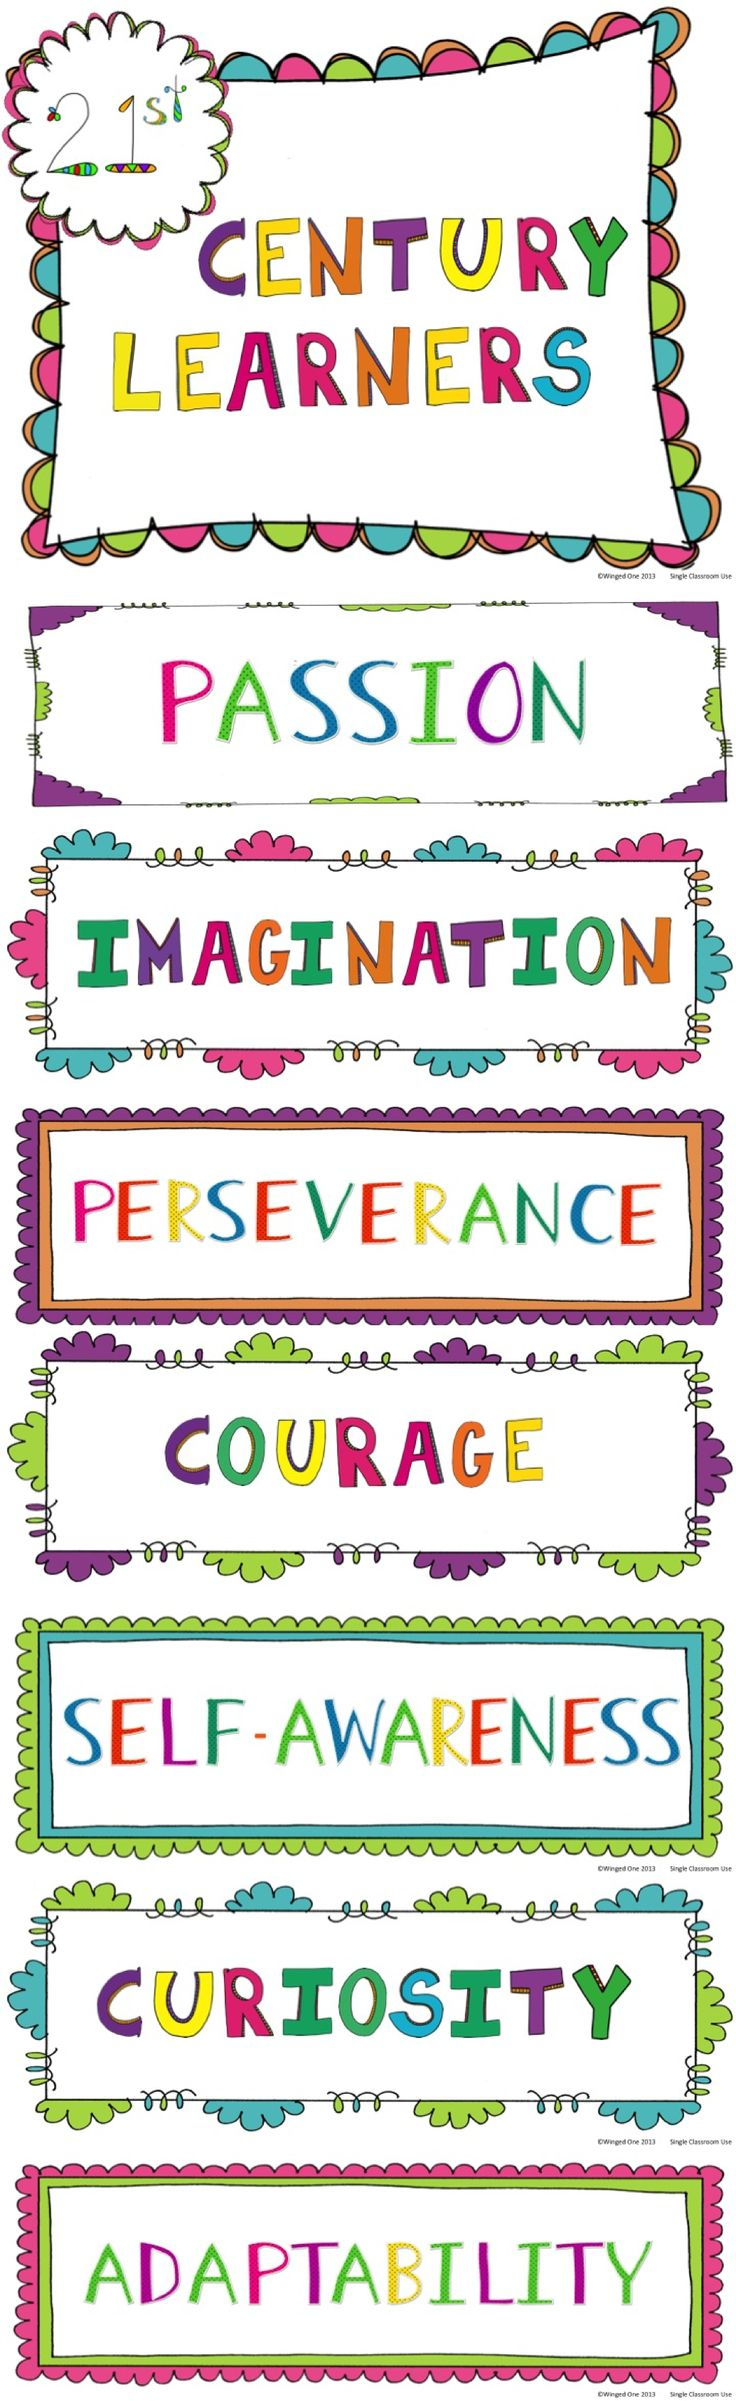 21st Century Learners Posters: Passion, Imagination, Perseverance, Courage, Curiosity, Adaptability $